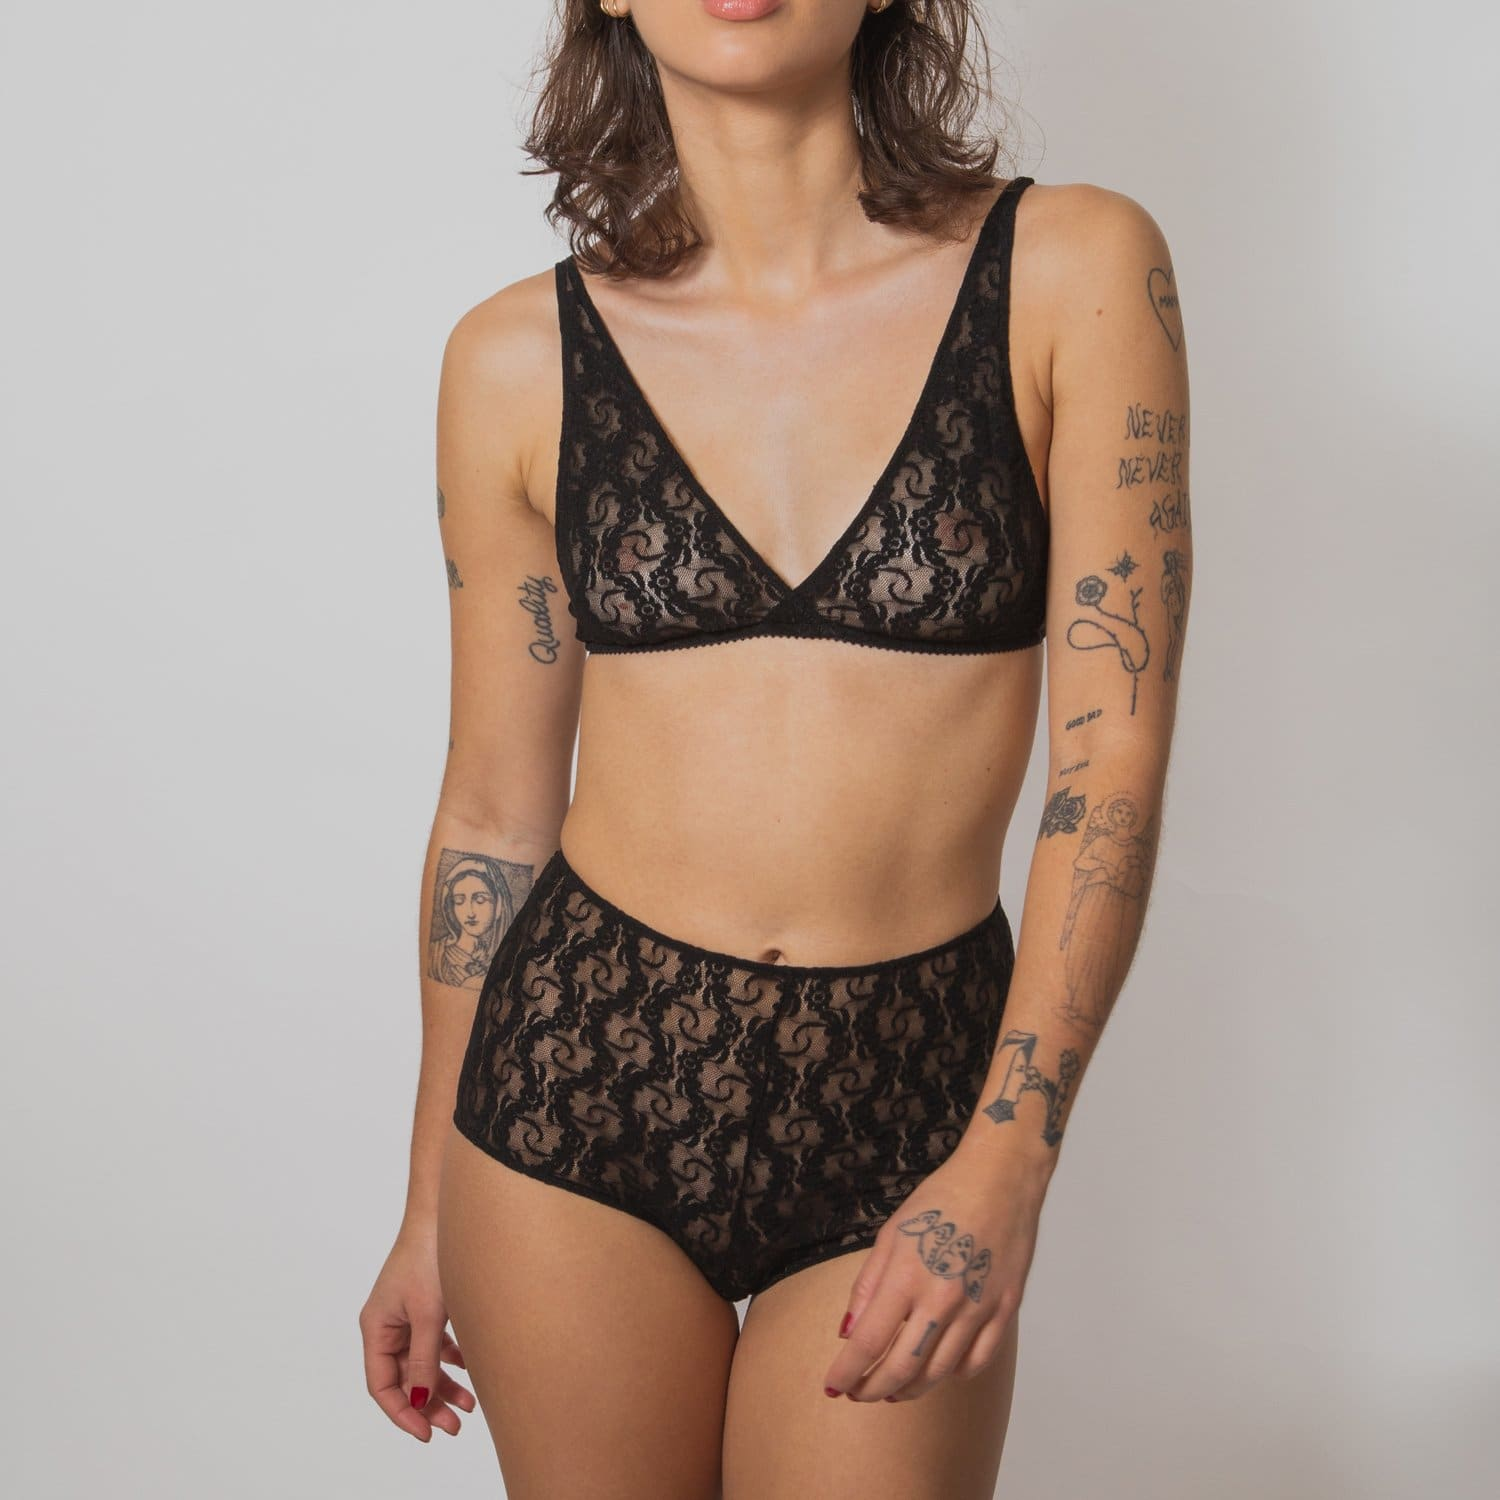 Only Hearts Lace Boy Shorts Black - Bra - Bralette - keep it